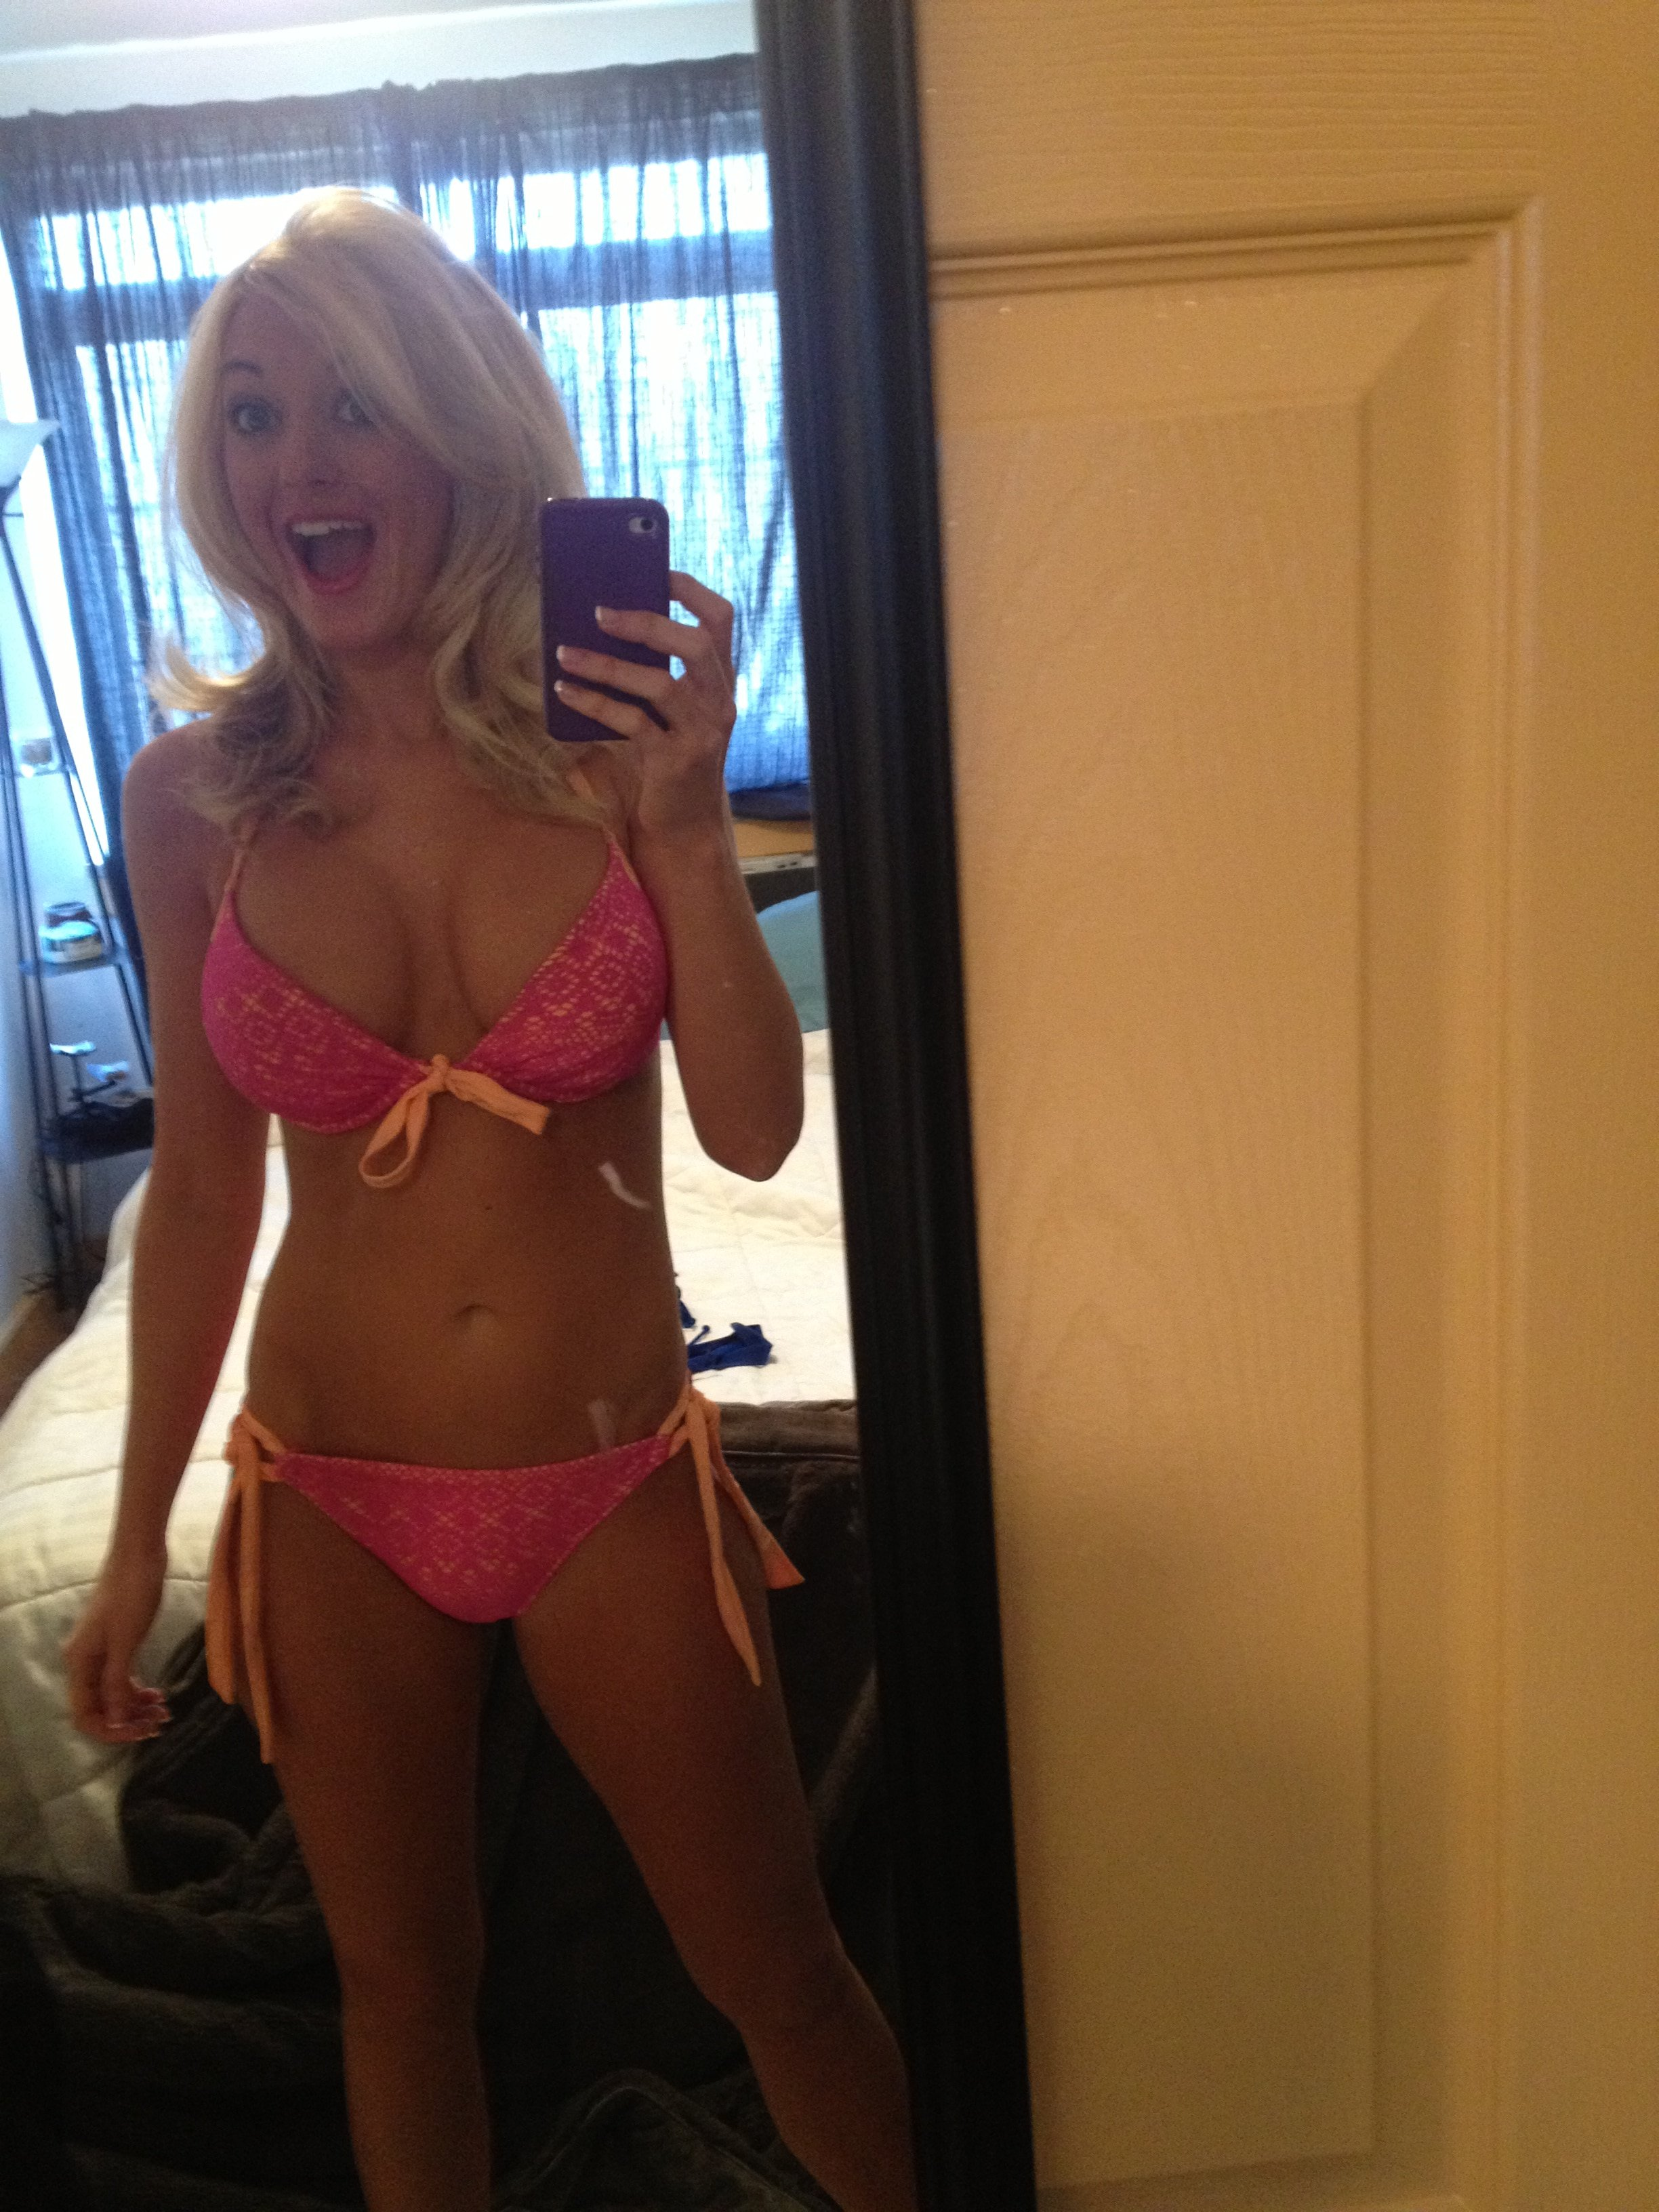 Thefappening.pm - Celebrity photo leaks - Page 621